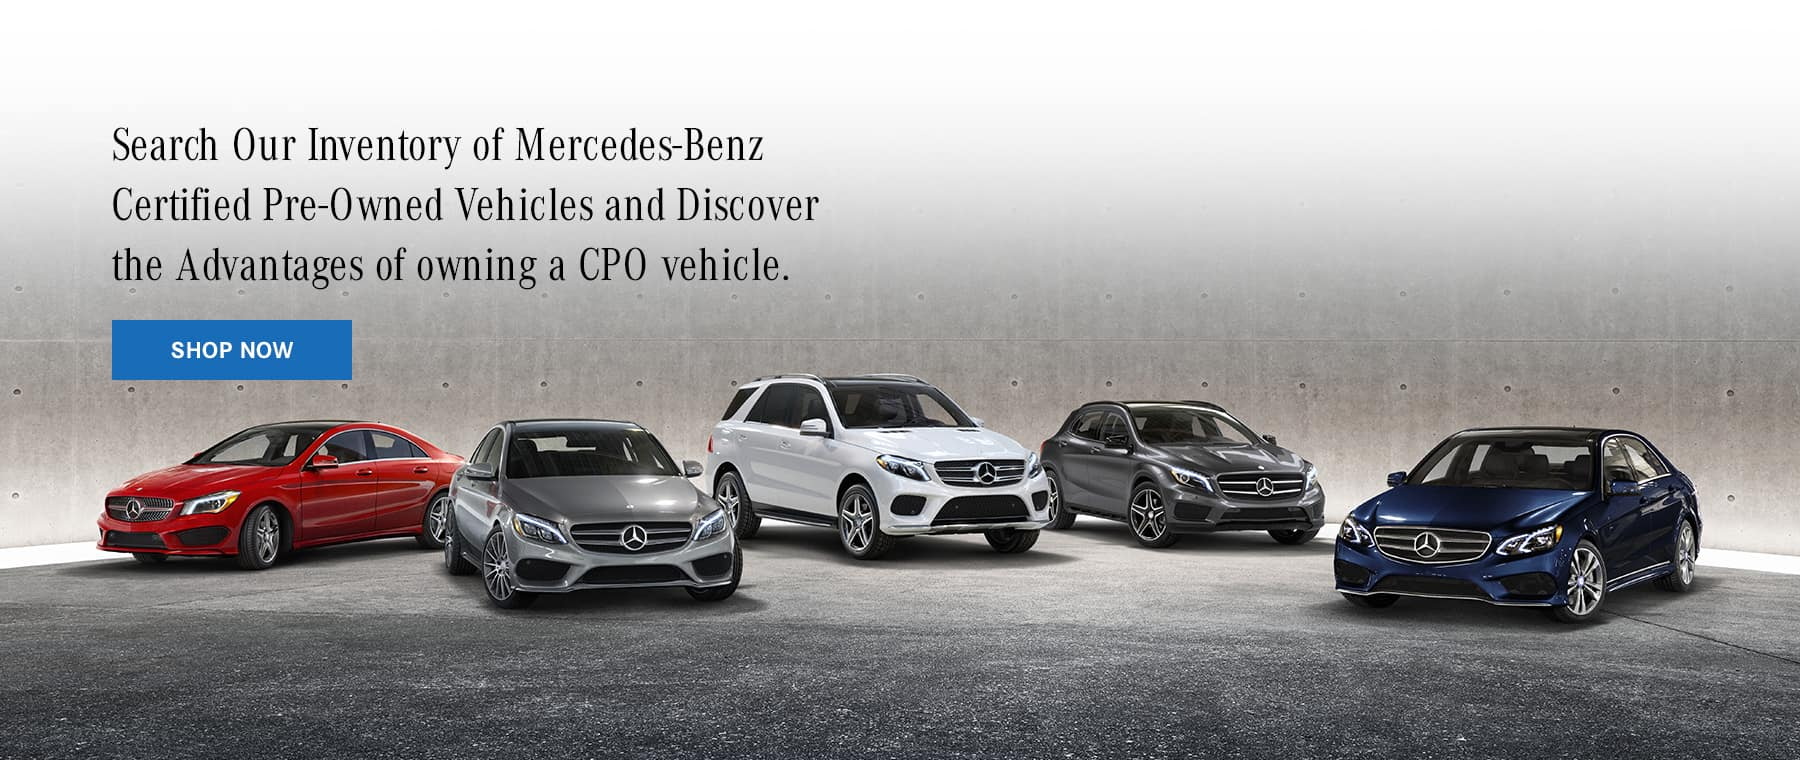 Mercedes benz of fairfield new and used mercedes benz for Fairfield mercedes benz service